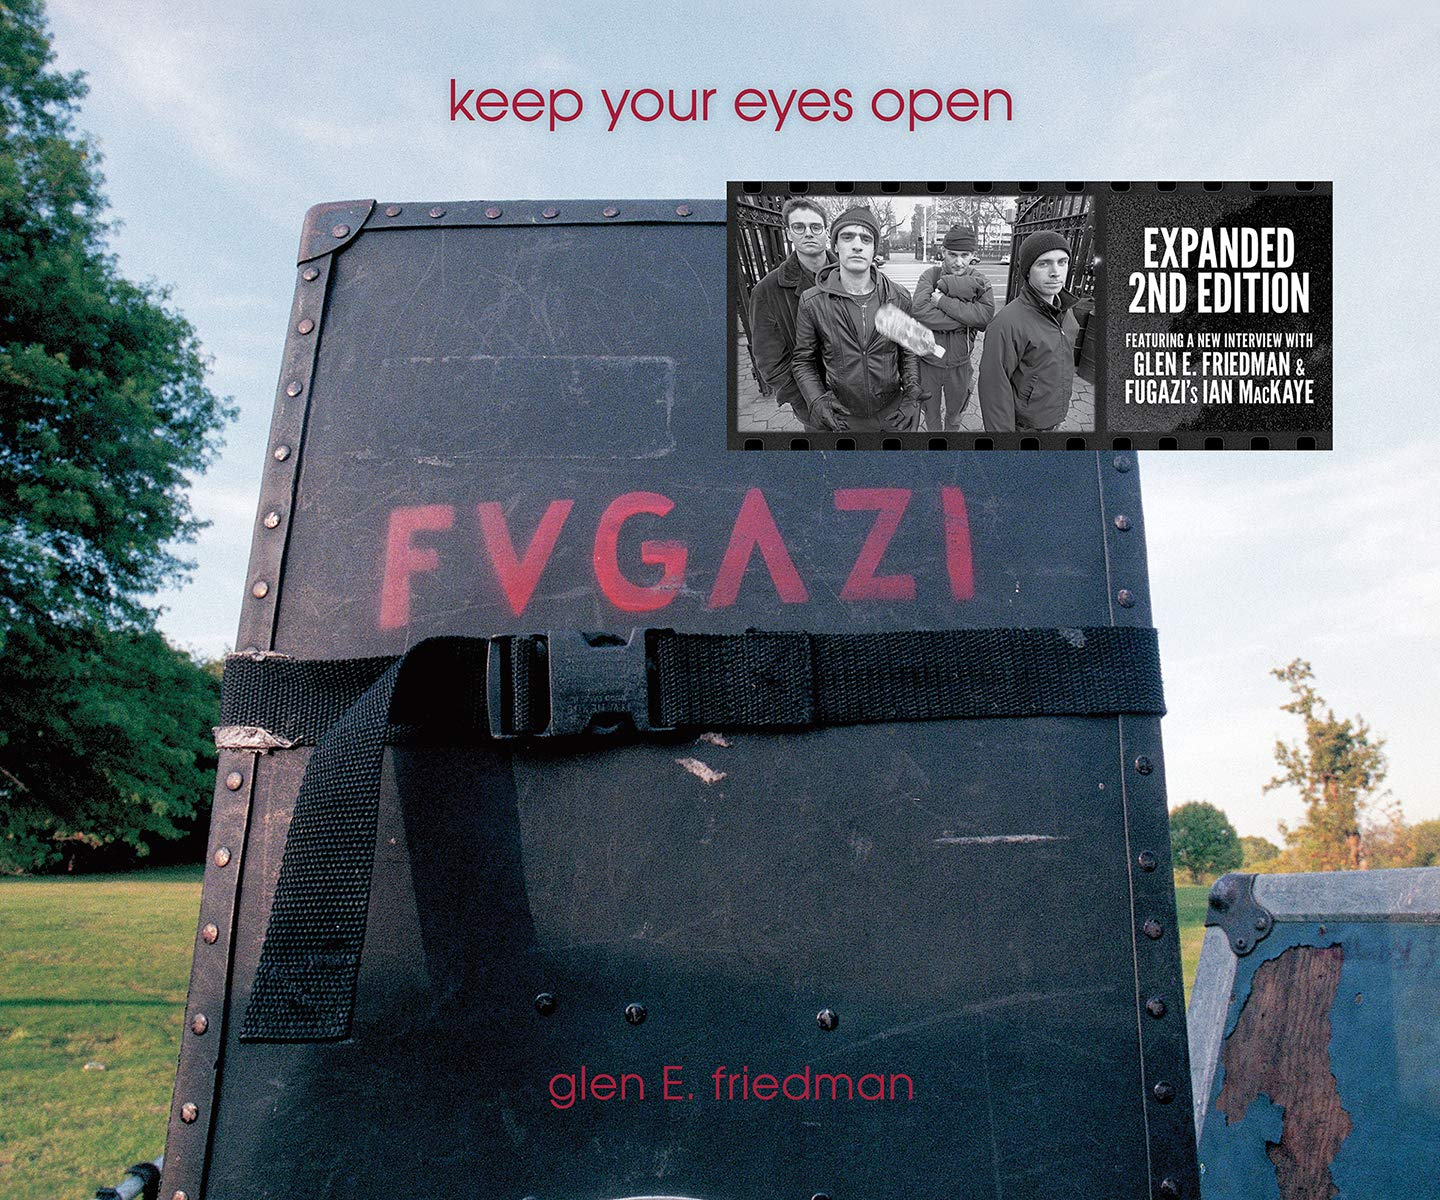 Fugazi: Keep Your Eyes Open